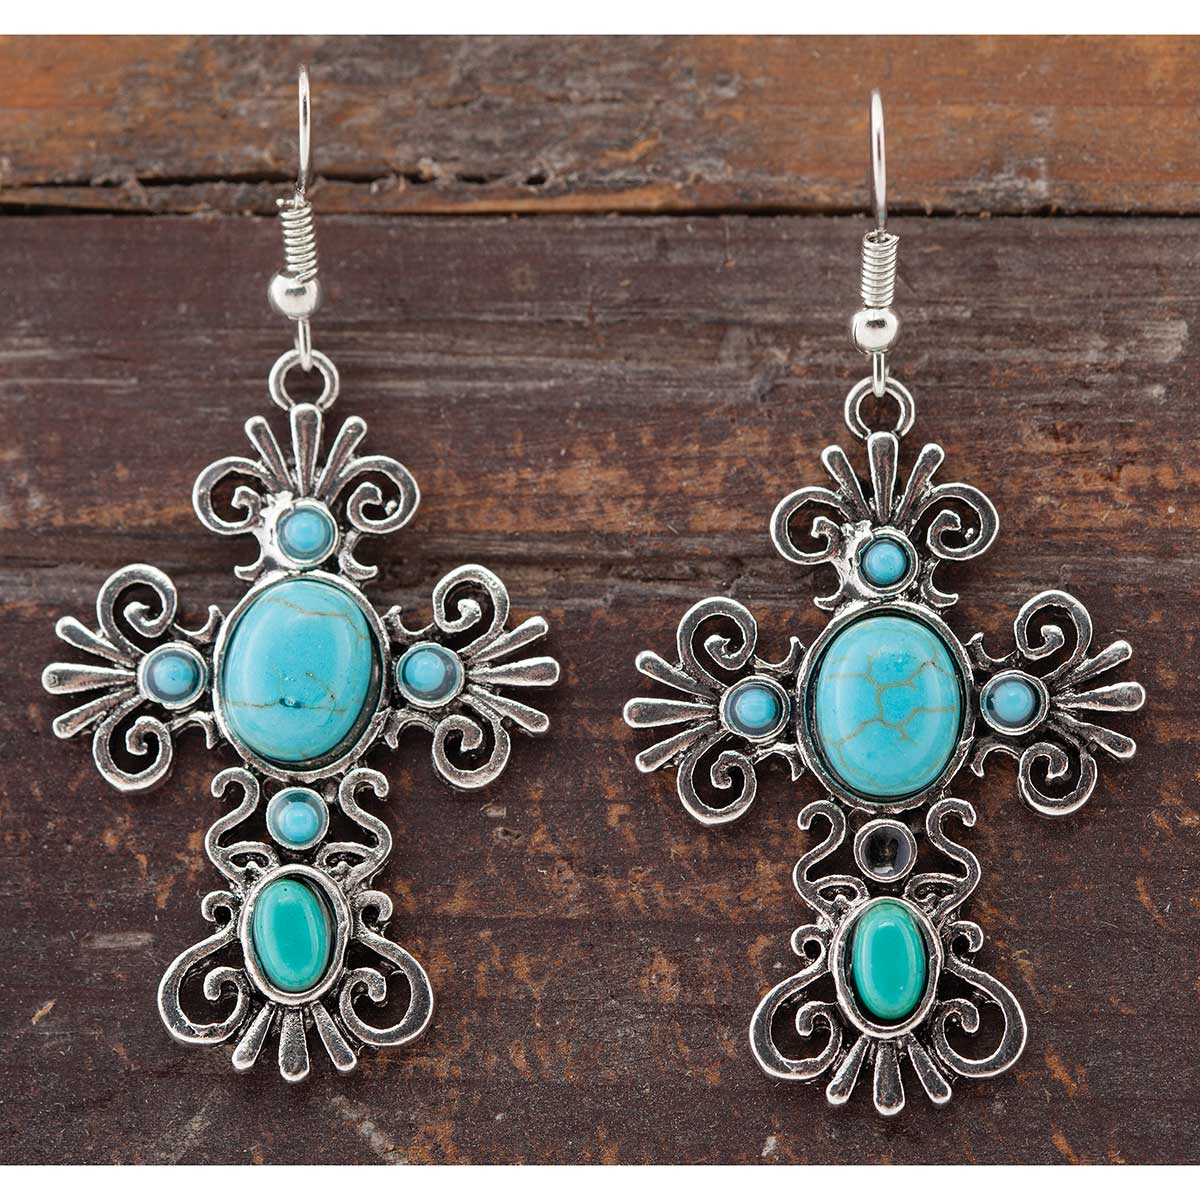 ANTIQUE SILVER TURQUOISE CROSS EARRINGS